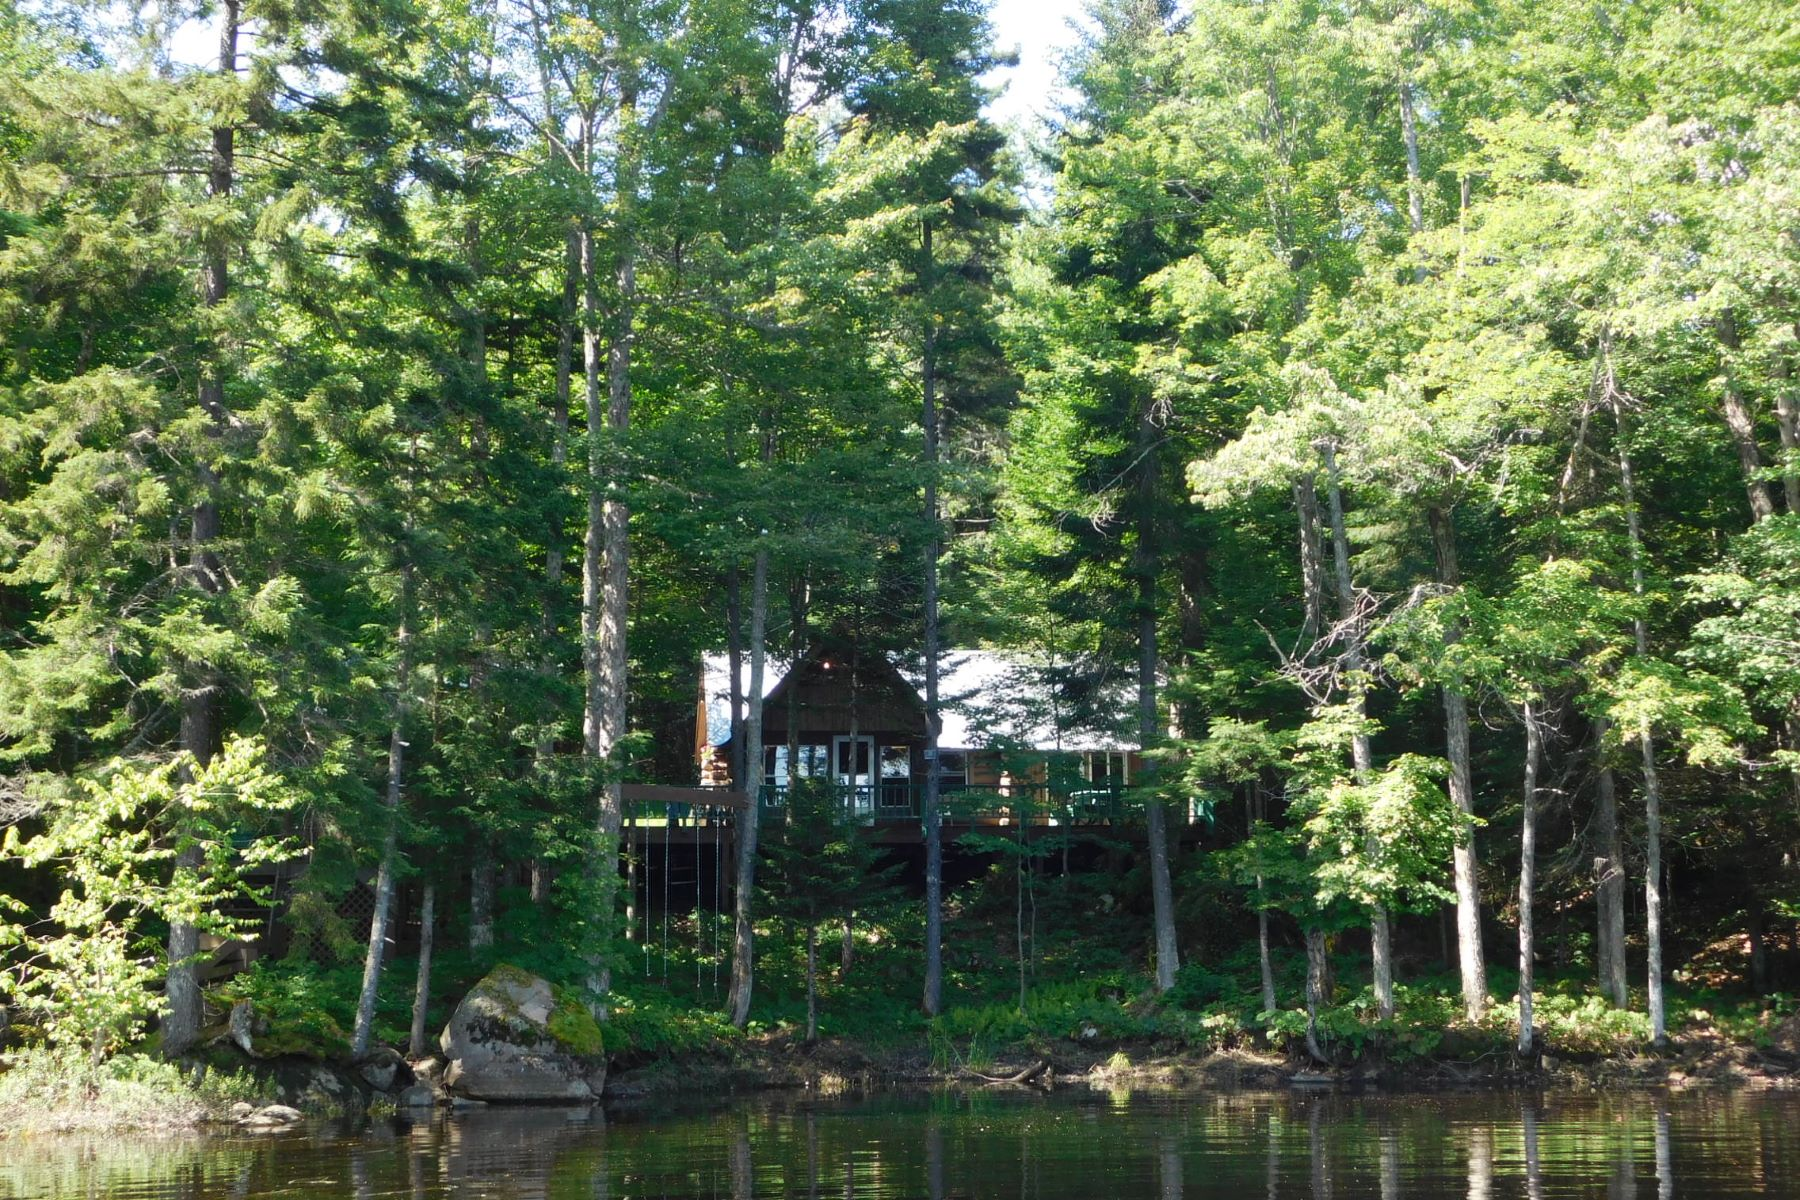 Casa Unifamiliar por un Venta en Secluded Cabin and 32 acres with unparalleled views of Stillwater Reservoir 3960 Big Moose Rd Big Moose, Nueva York 13331 Estados Unidos